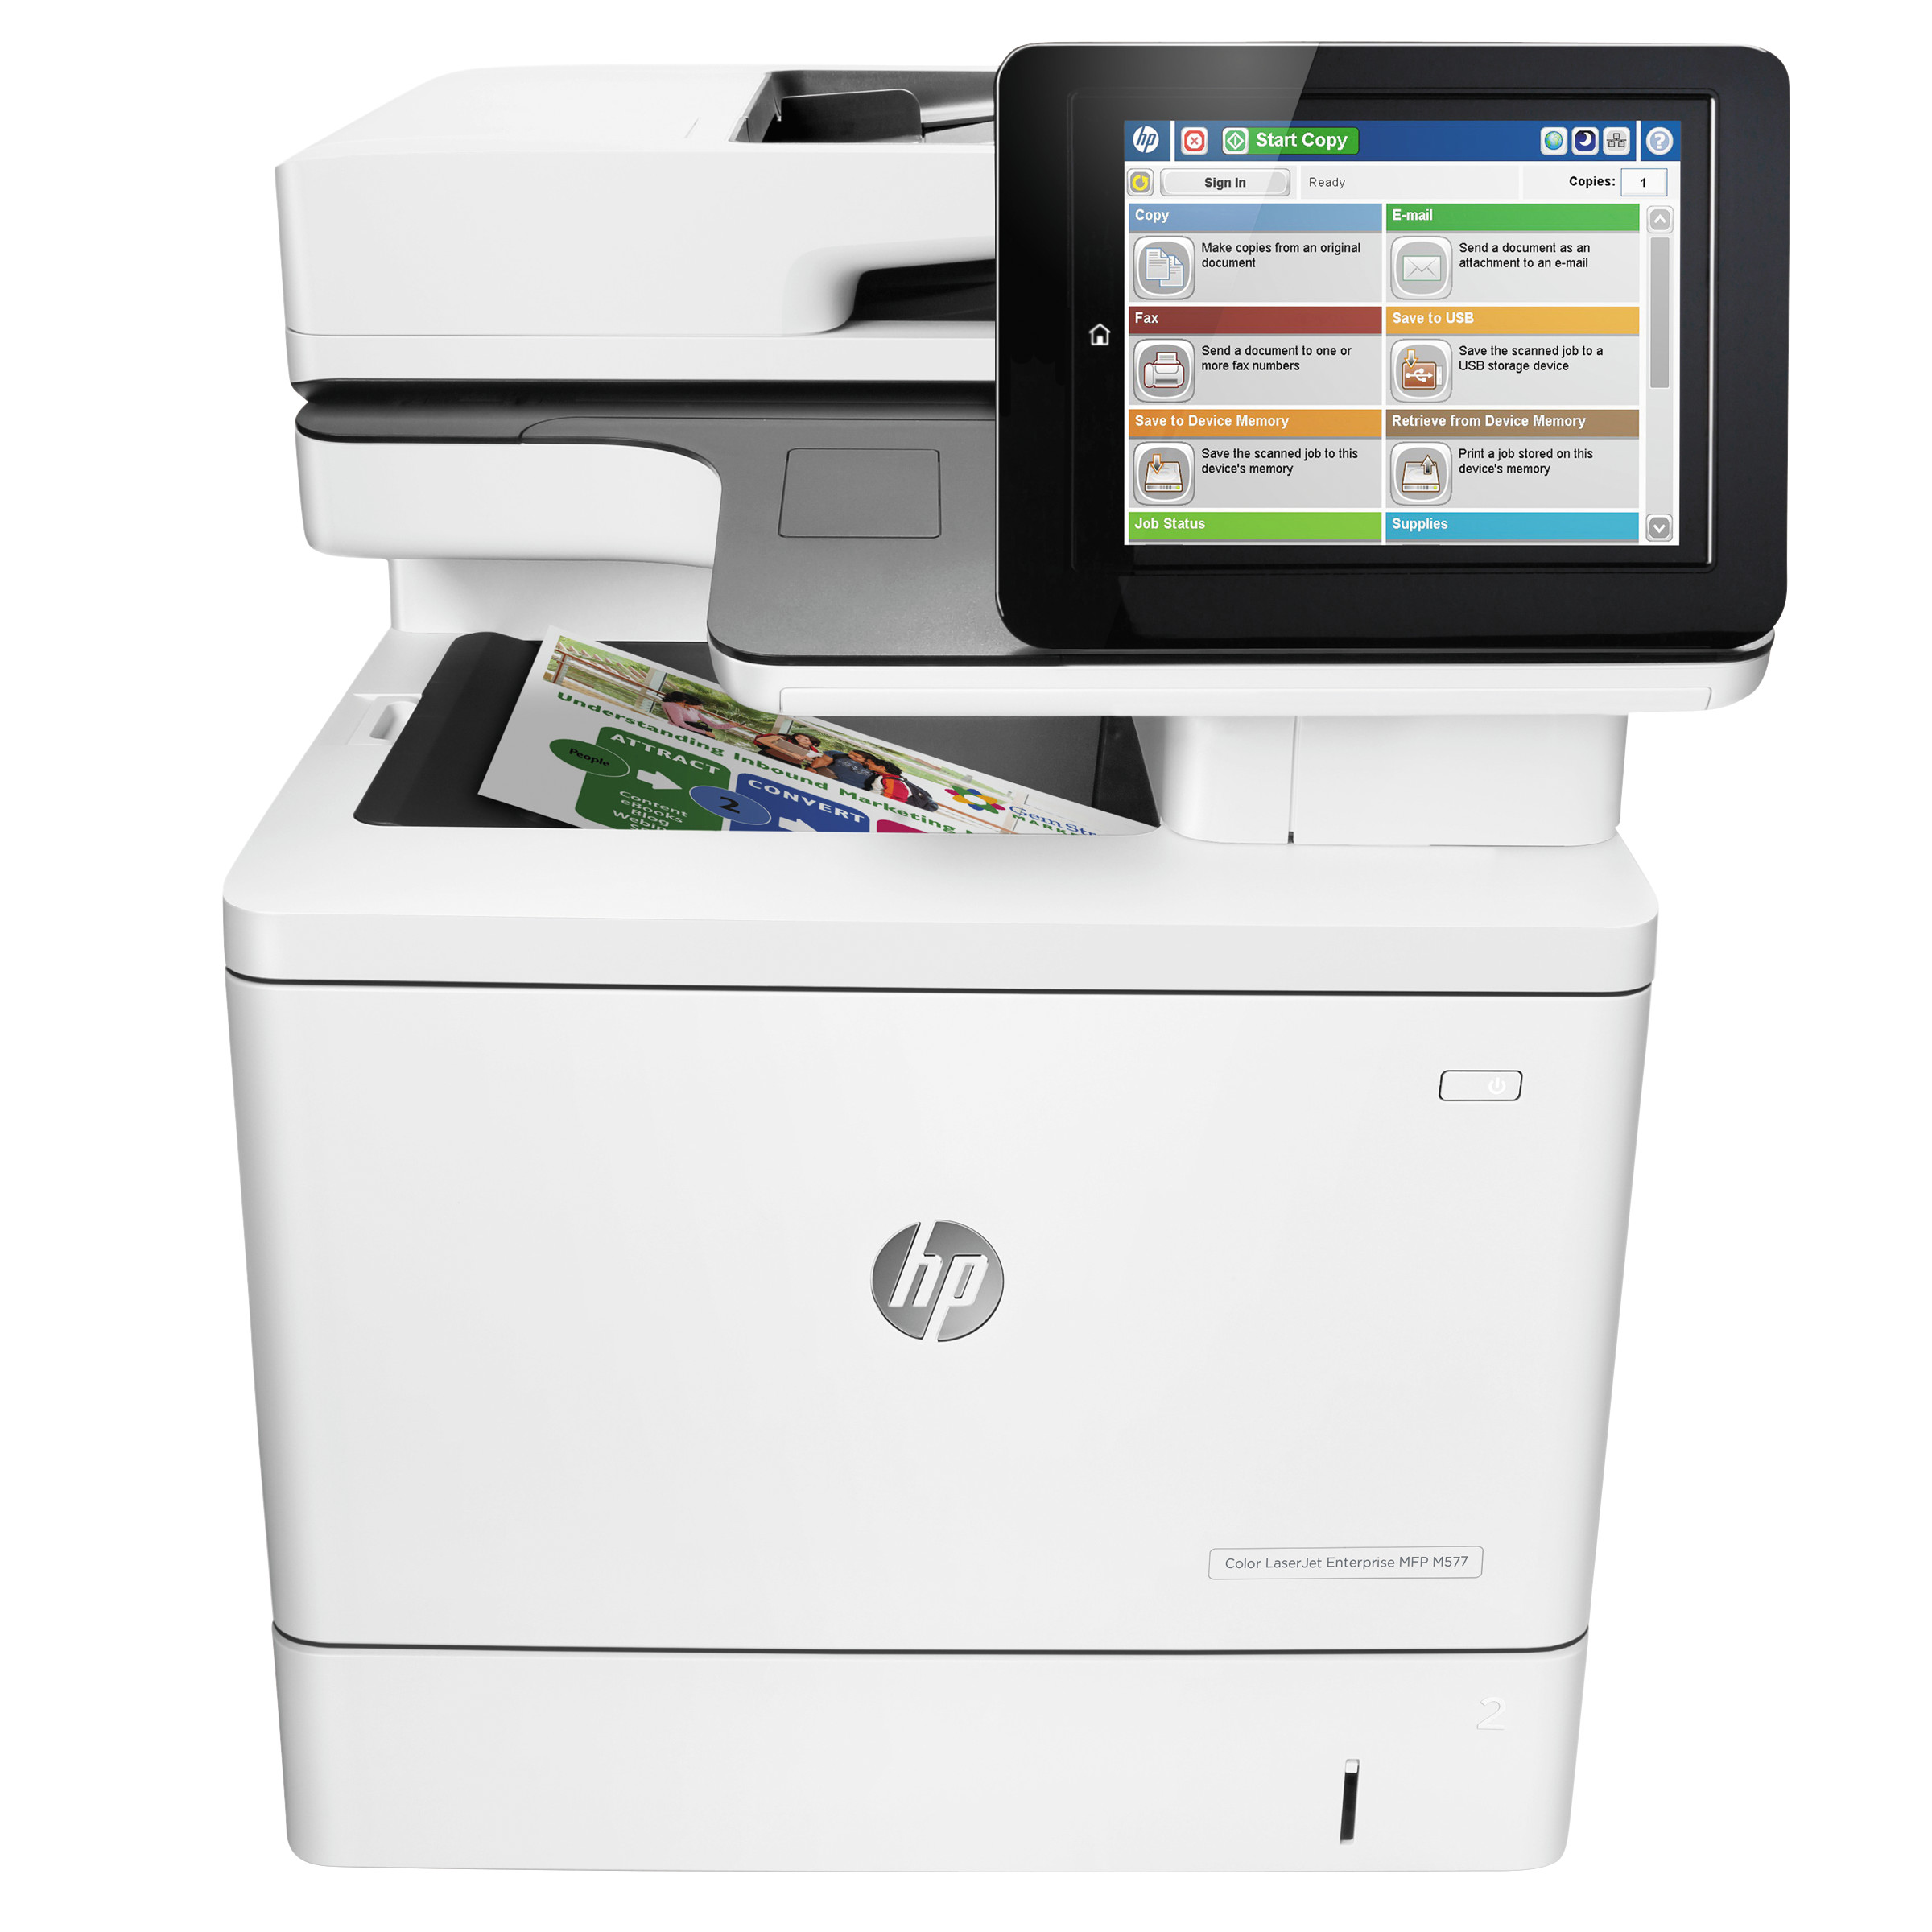 HP Color LaserJet Enterprise MFP M577dn, Copy/Print/Scan -HEWB5L46A